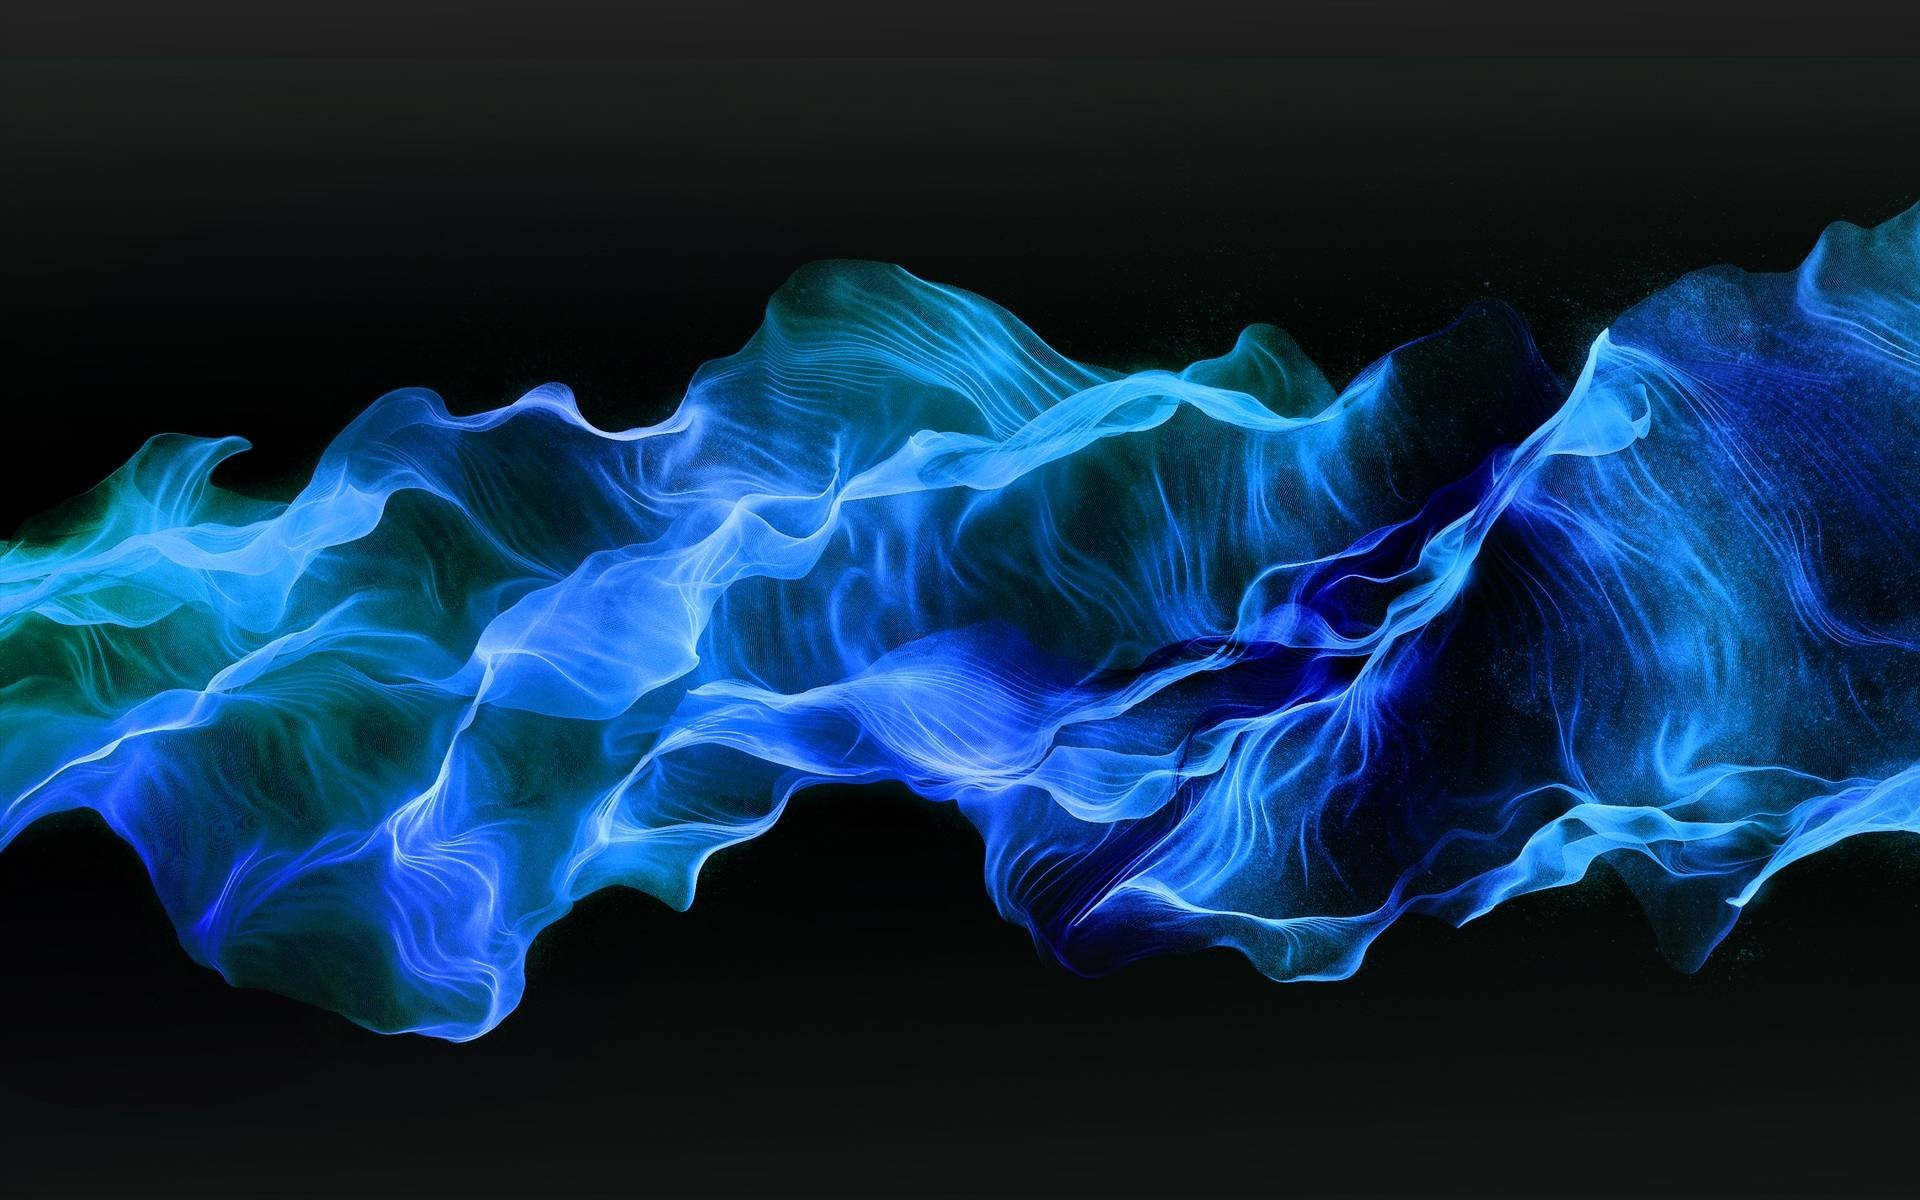 1920x1200  Most Downloaded Blue Fire Wallpapers - Full HD wallpaper search